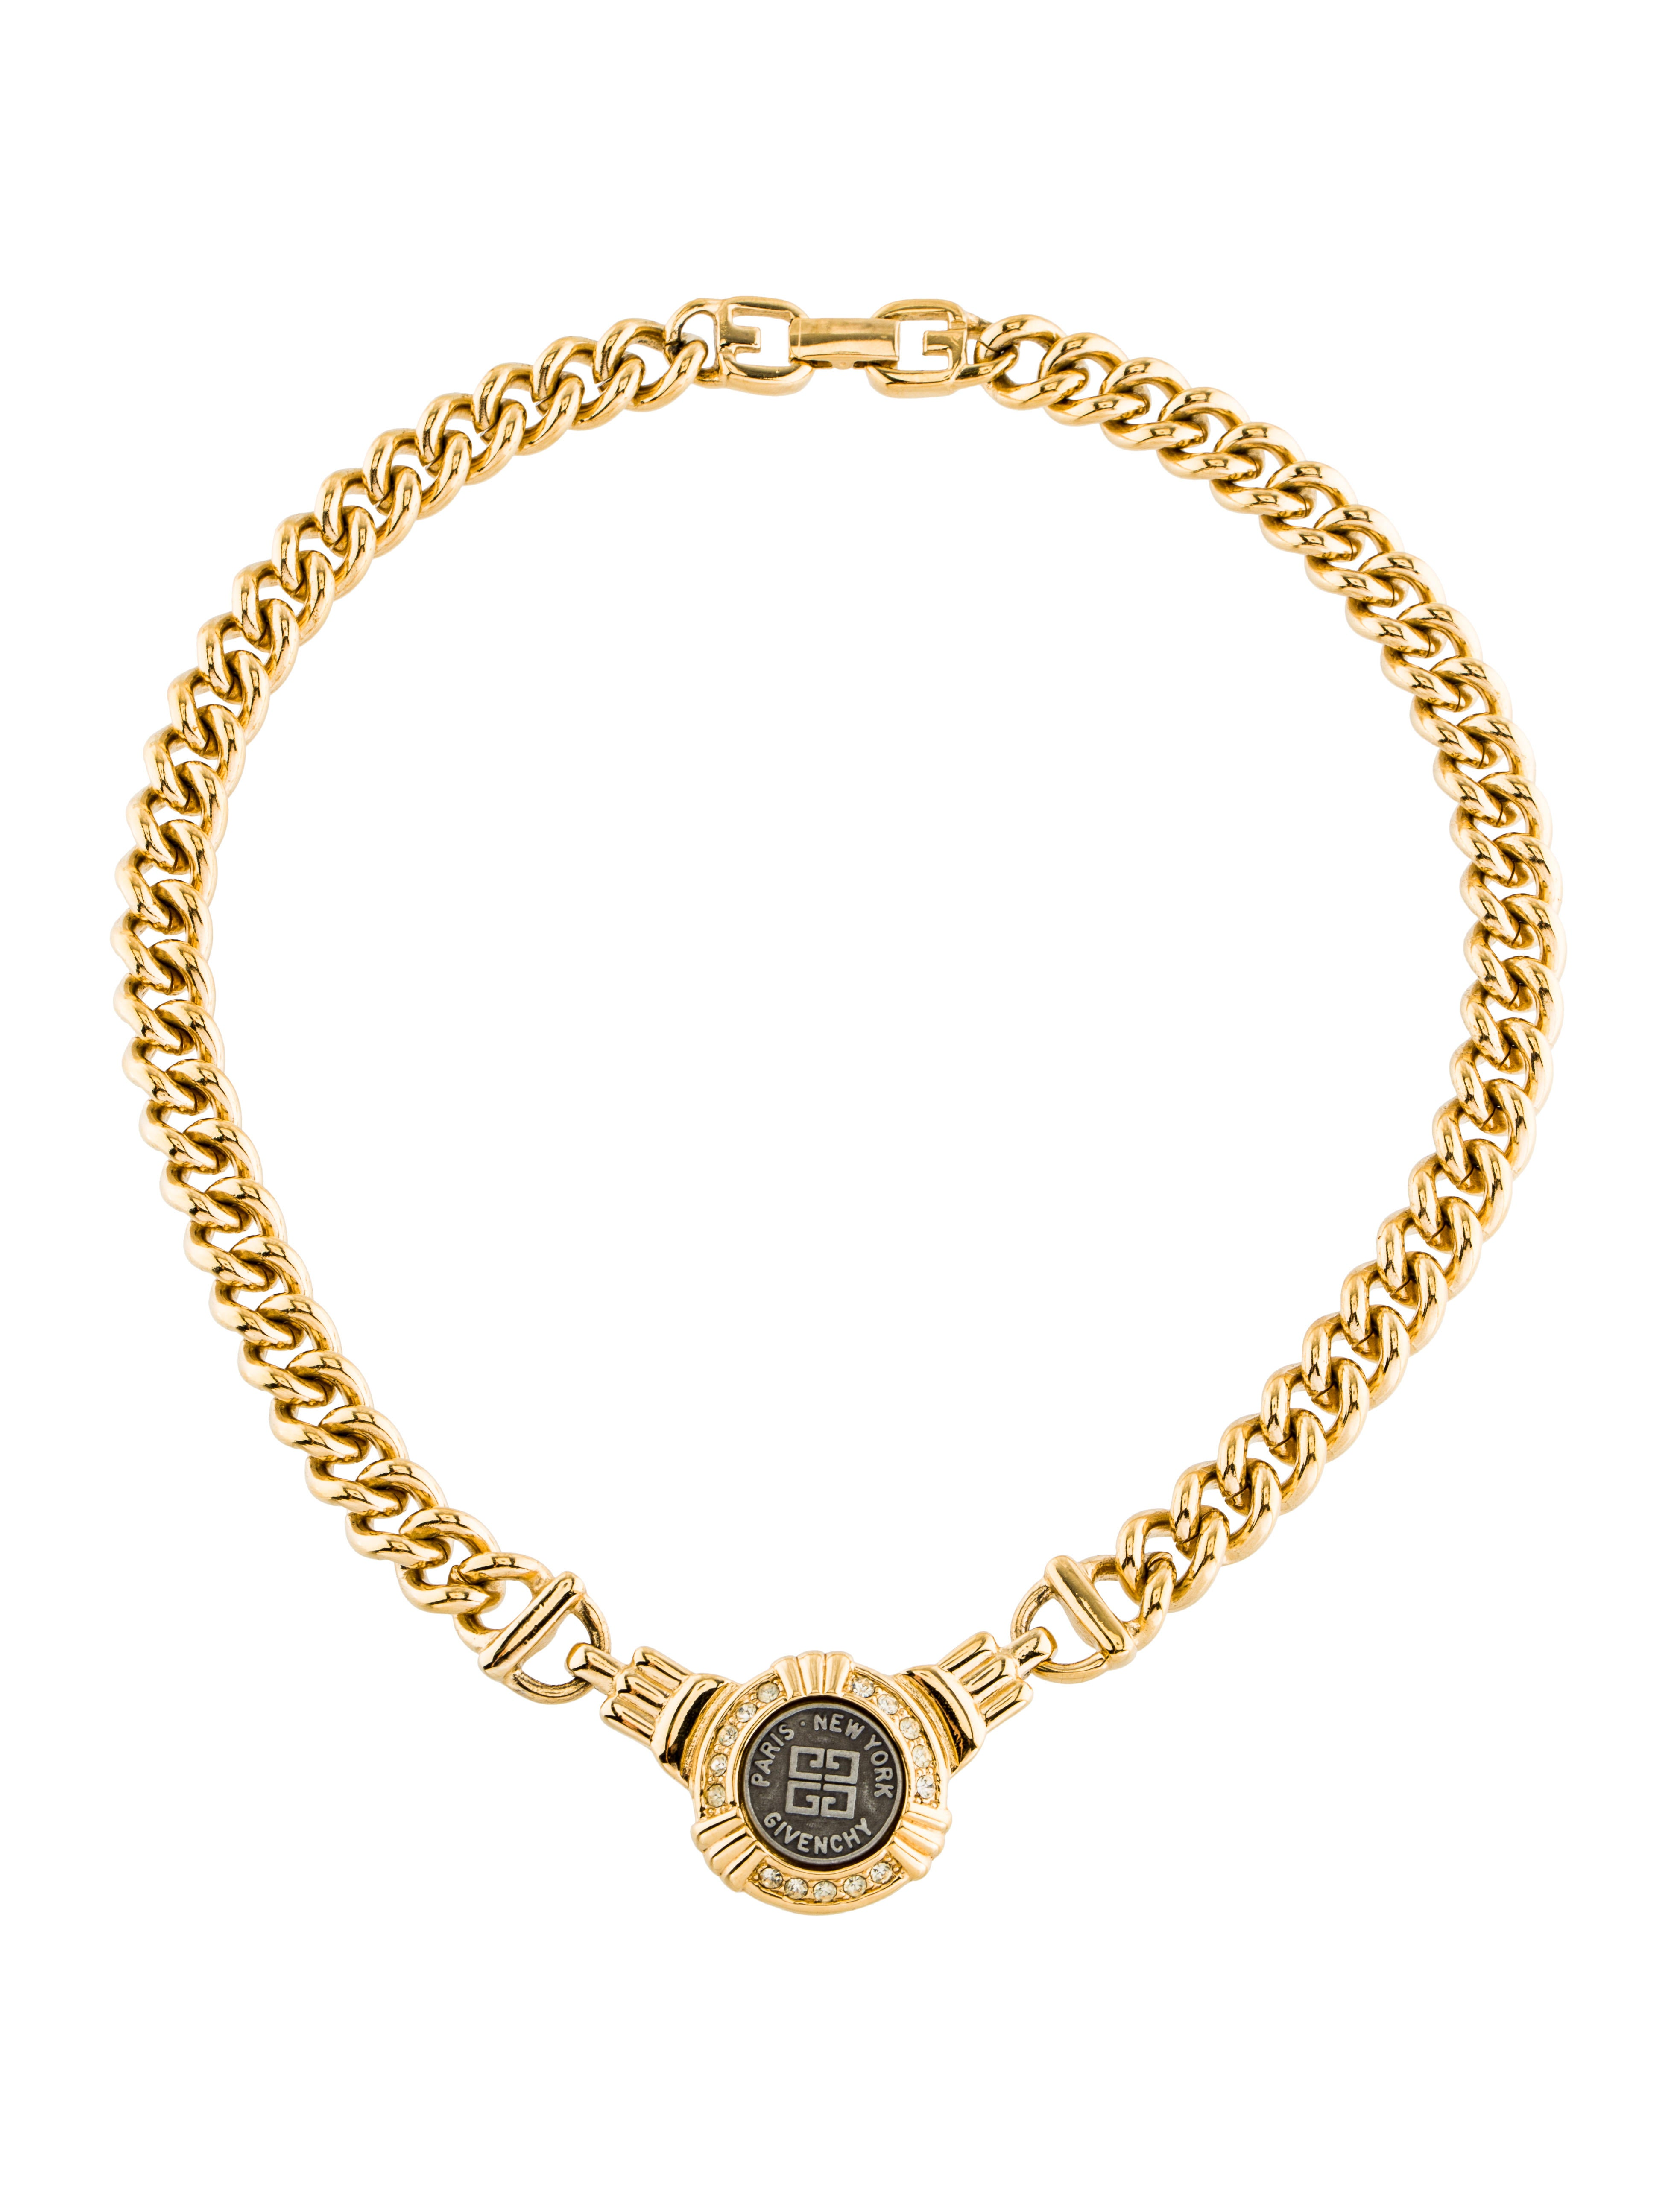 Givenchy Medallion Logo Coin Necklace  Necklaces. Copper Filled Bangles. Temple Bangles. Polish Bangles. Chain Model Bangles. Gents Bangles. Ancient Bangles. 14kt Bangles. Gent Bangles